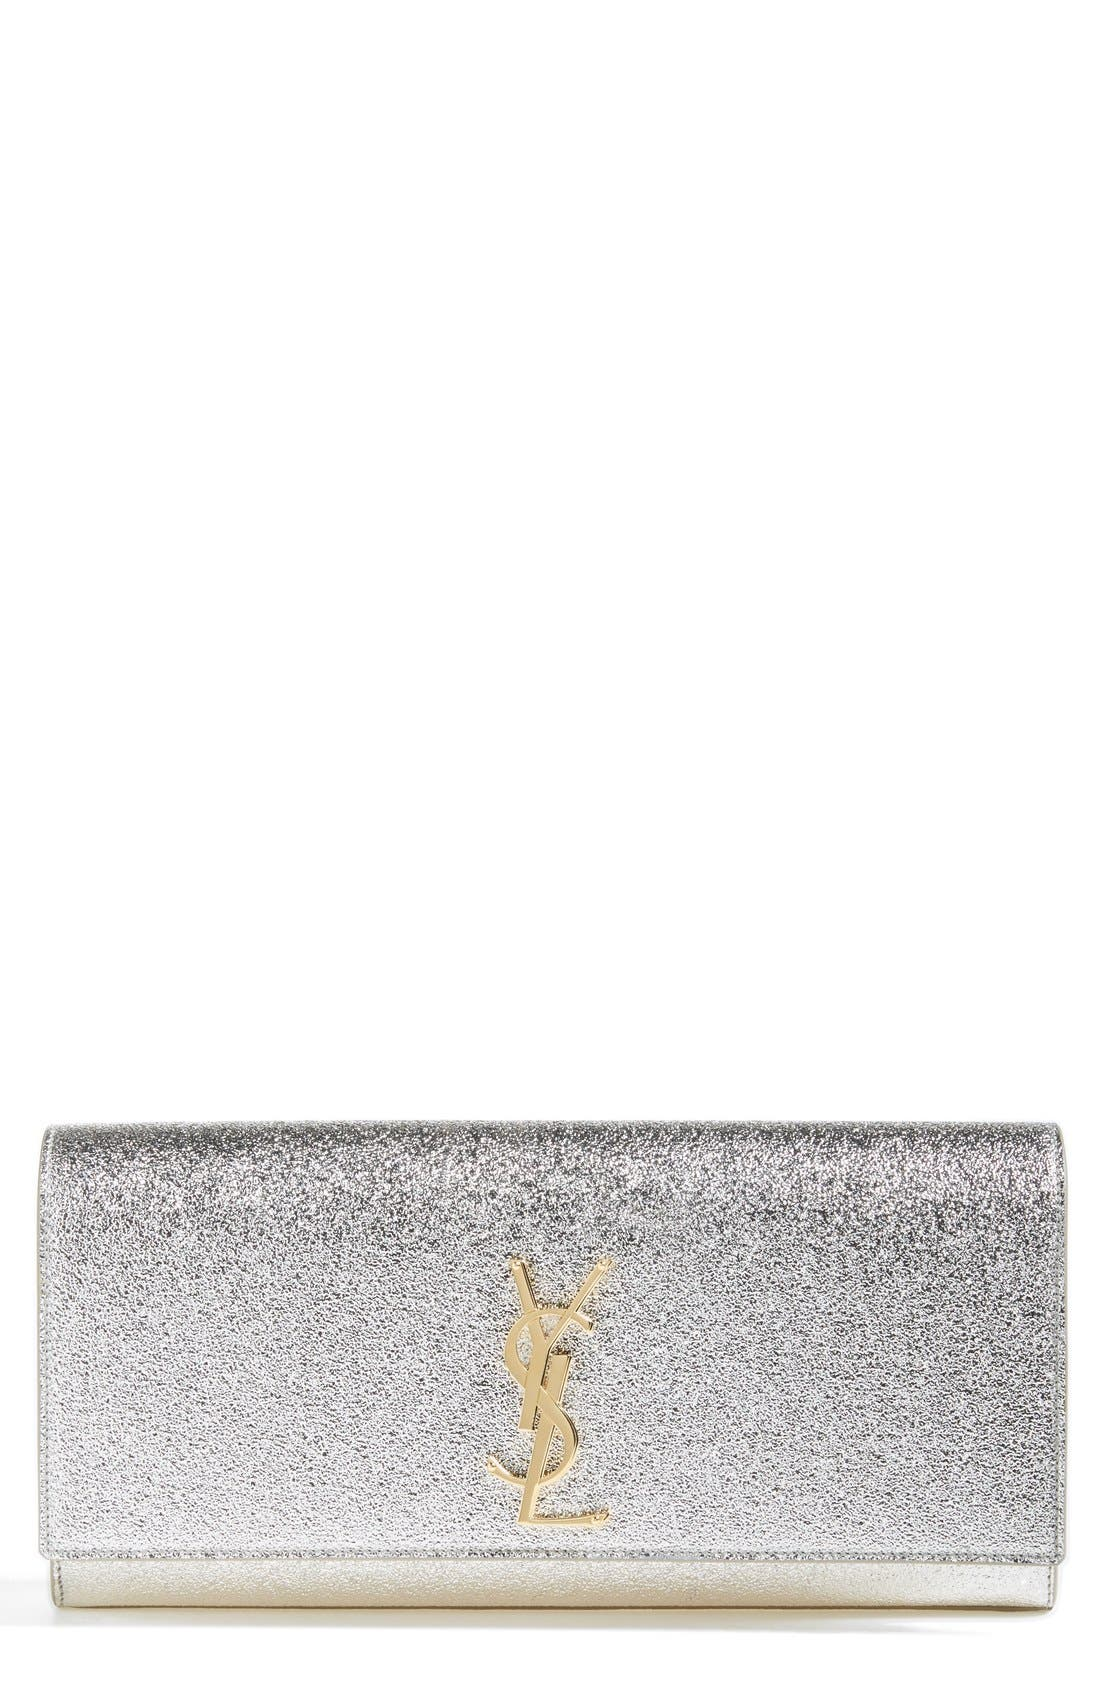 Main Image - Saint Laurent 'Cassandre' Leather Clutch